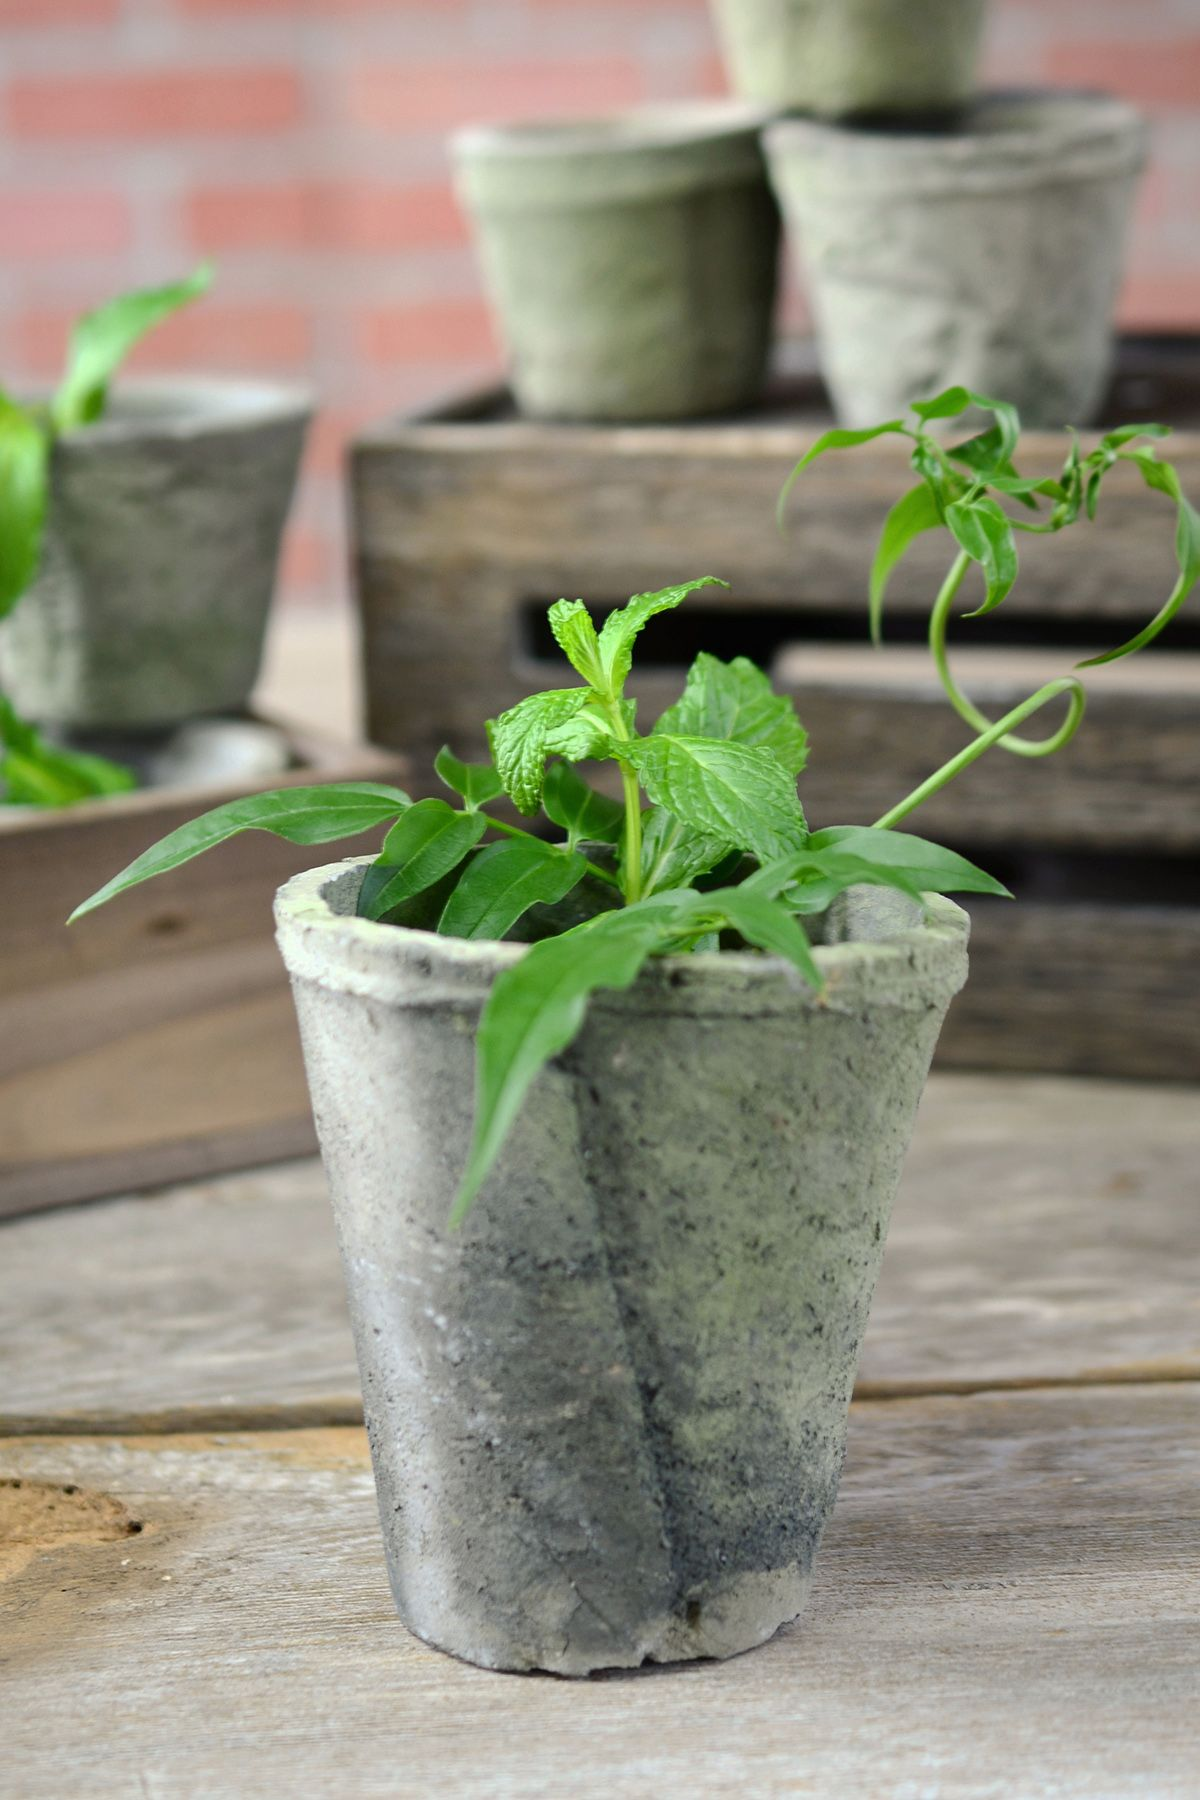 Rustic Cement Flower Pots 4 1 2 Inch Cement Flower Pots Flower Pots Flower Pot Design